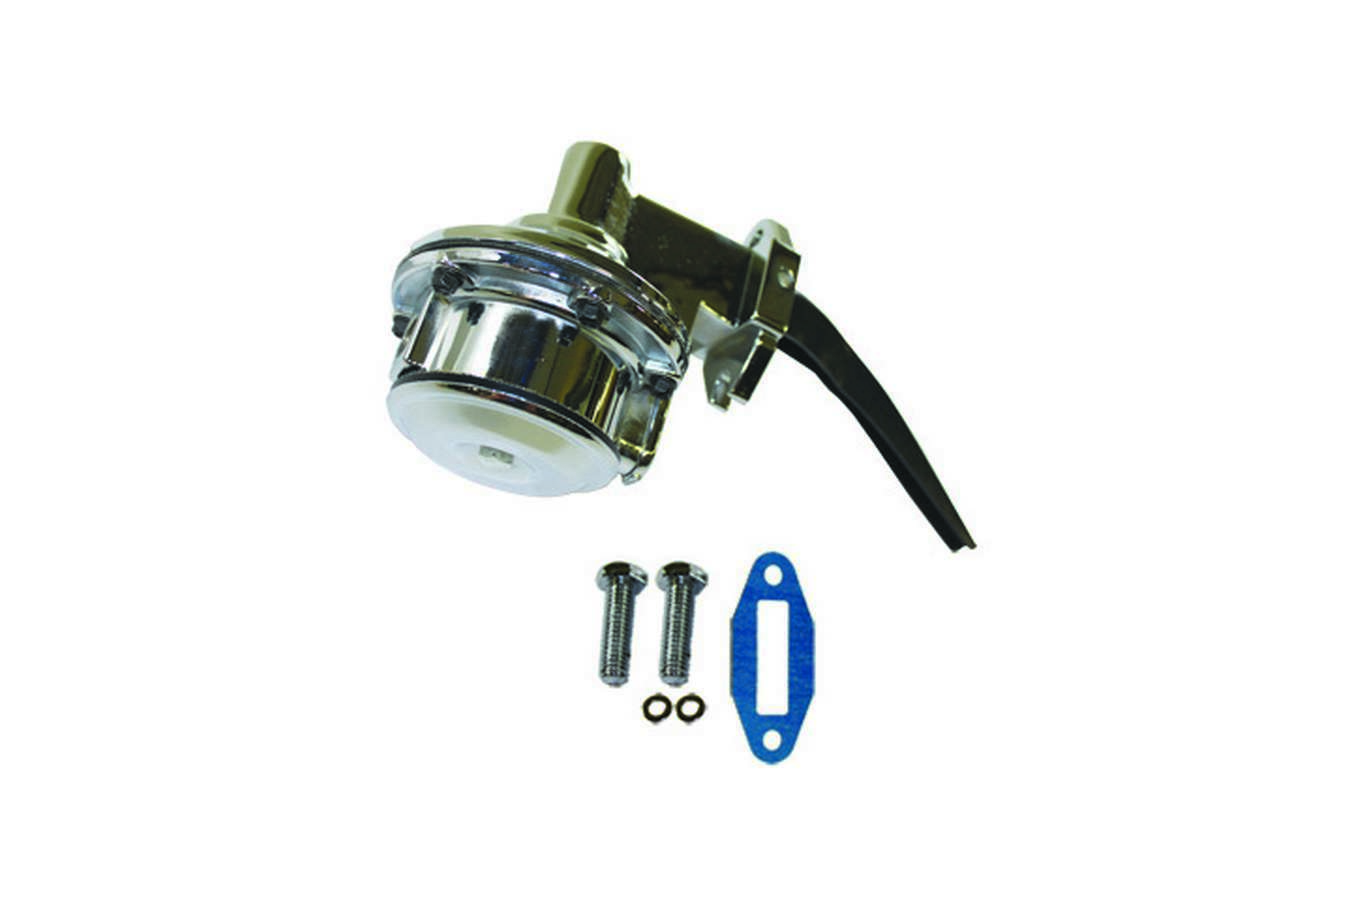 Specialty Chrome 3158 Fuel Pump, Mechanical, 80 gph, 8 psi, 1/4 in NPT Female Inlet, 1/4 in NPT Female Outlet, Aluminum, Chrome, Gas, Oldsmobile V8, Each